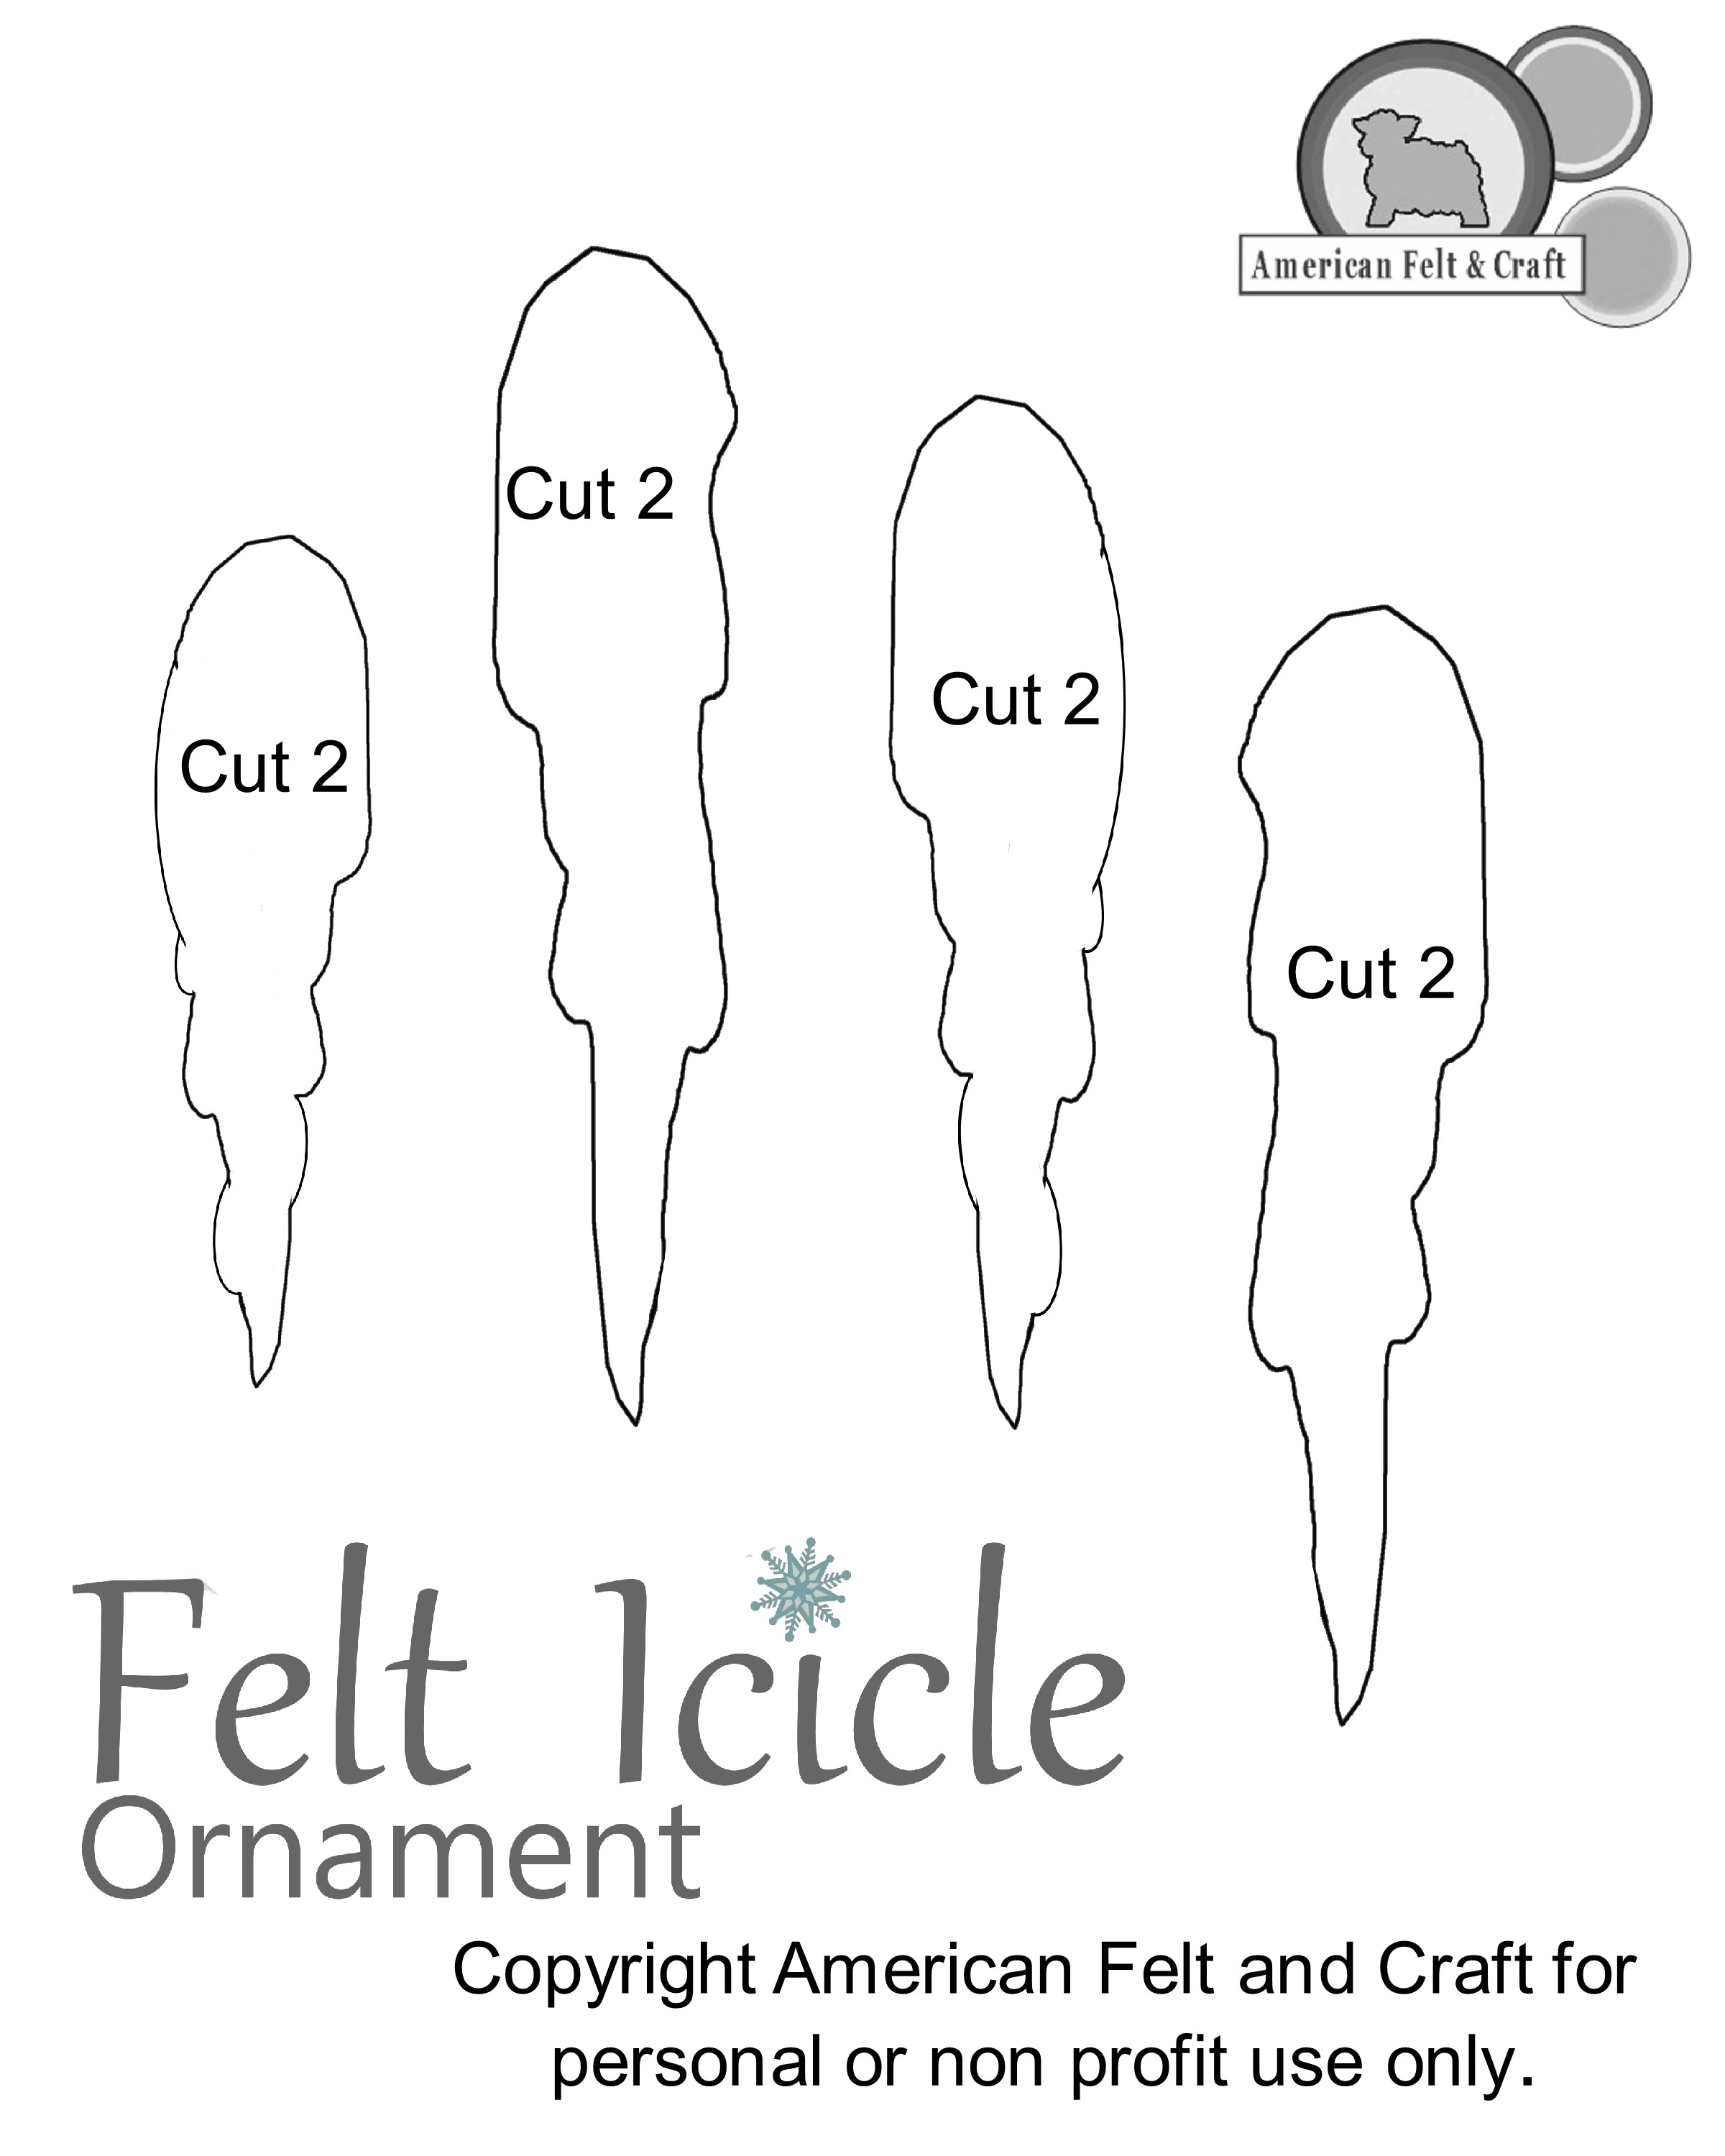 Felt Icicle Ornament Pattern